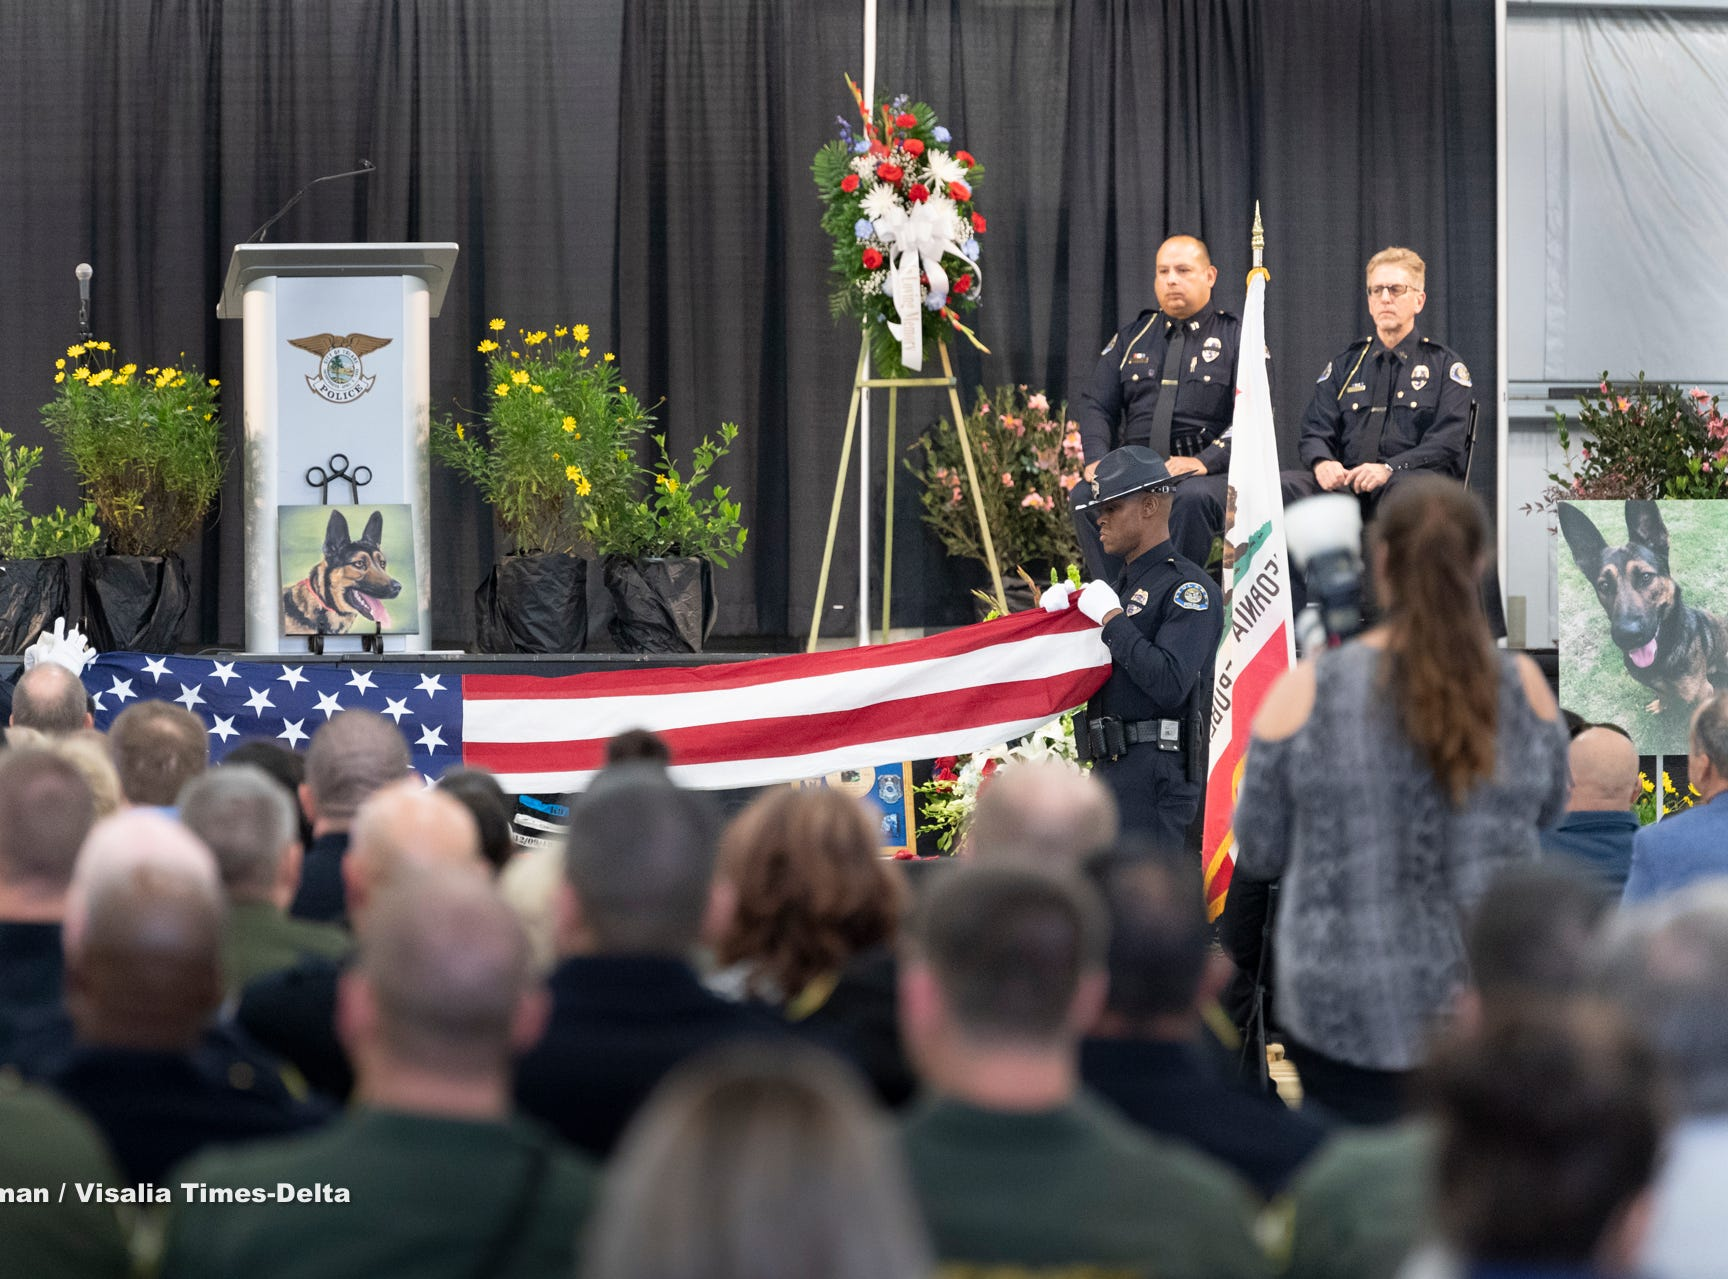 Tulare Police officers Jonathan Zequeida, left, and Eric Wilson fold a U.S. flag during a memorial for Tulare Police K-9 officer Bane on Wednesday, January 9, 2019. Bane was killed during an officer-involved shooting on December 9 of last year.